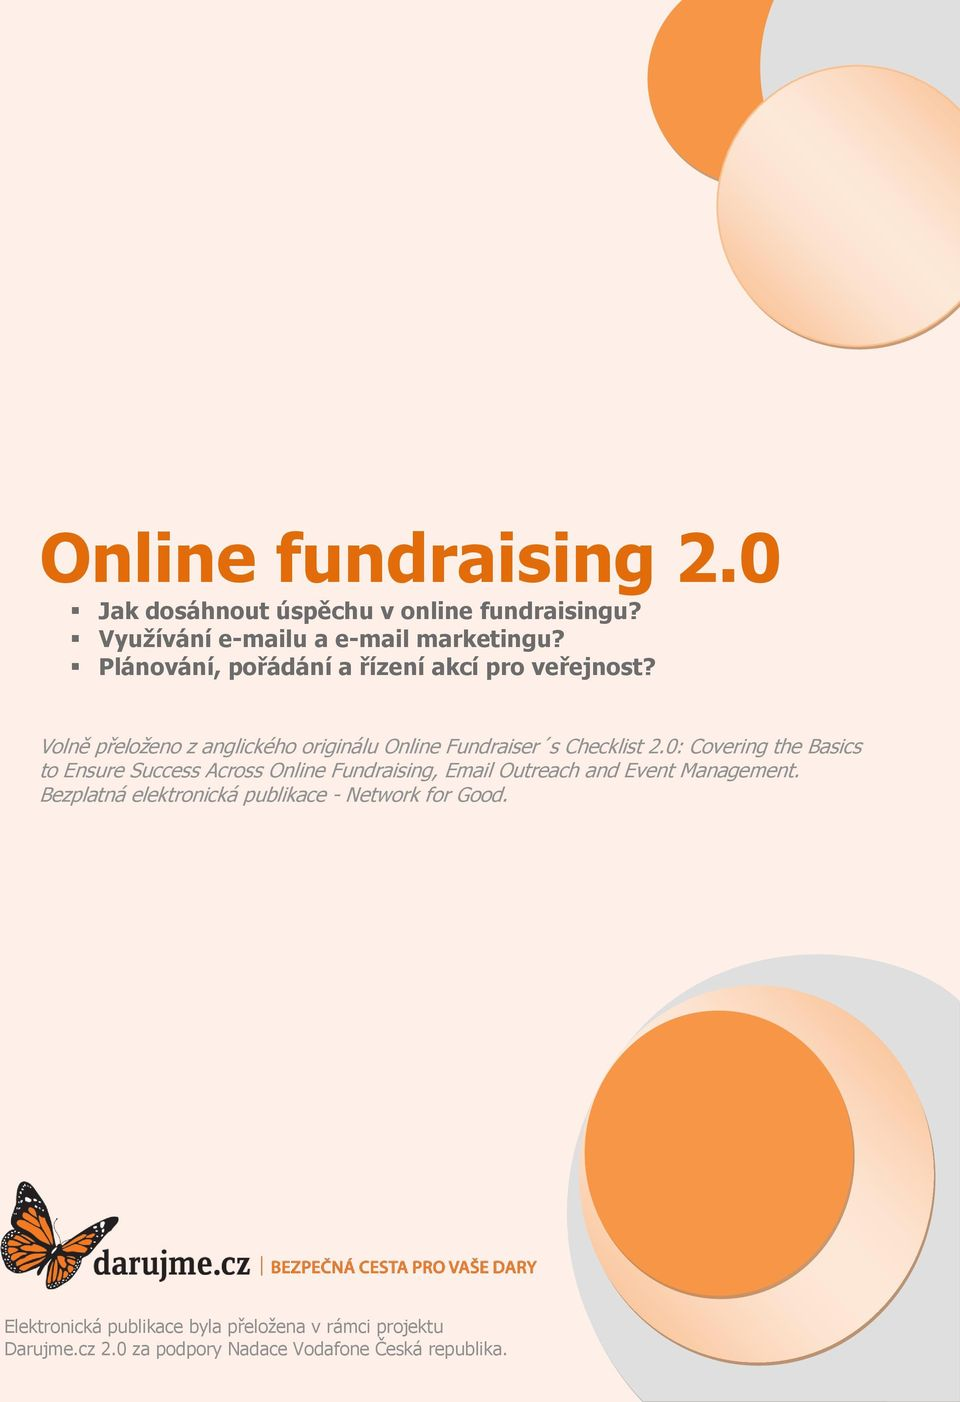 0: Covering the Basics to Ensure Success Across Online Fundraising, Email Outreach and Event Management.